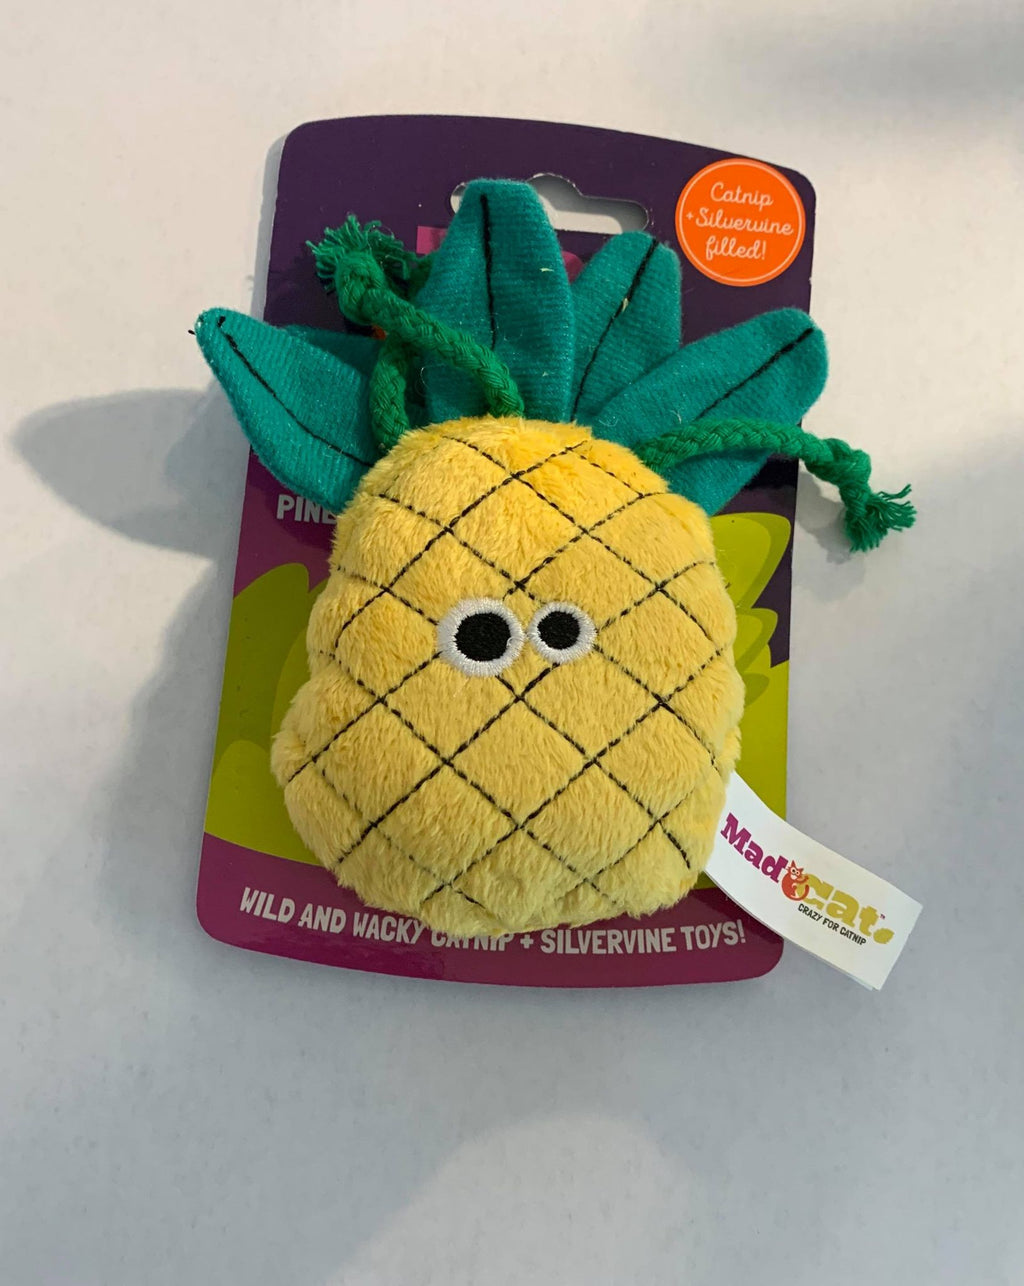 Mad Cats Purrfect Pineapple Crazy for Catnip Cat Toy